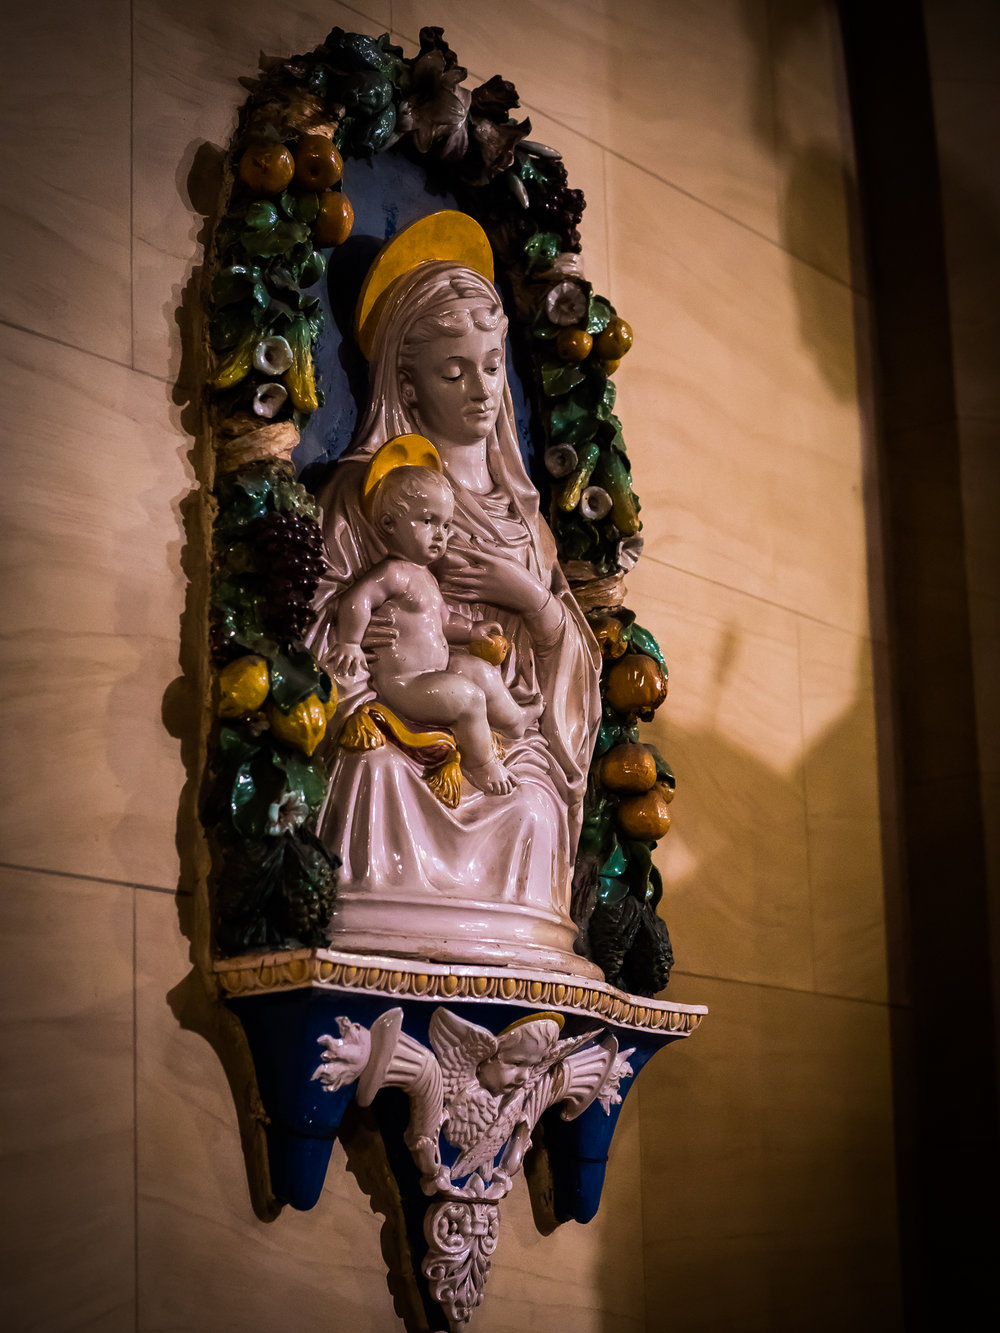 The Virgin & Child, 19th c.,   Della Robbia style,  gospel-side aisle  Photo by Ricardo Gomez